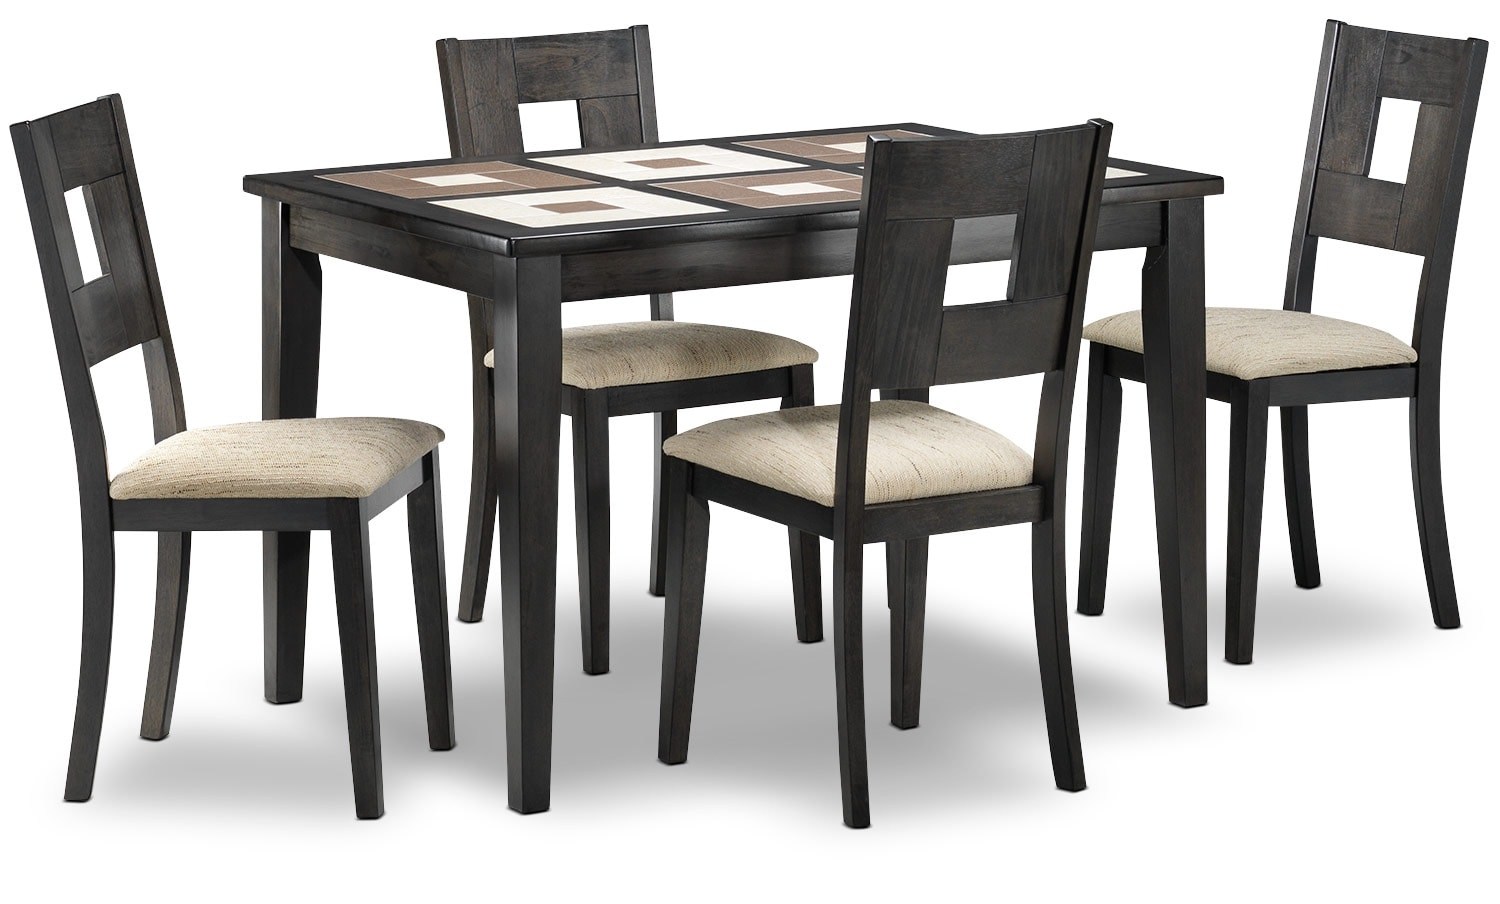 Casual Dining Room Furniture - 5th Avenue 5-Piece Dinette Set - Espresso